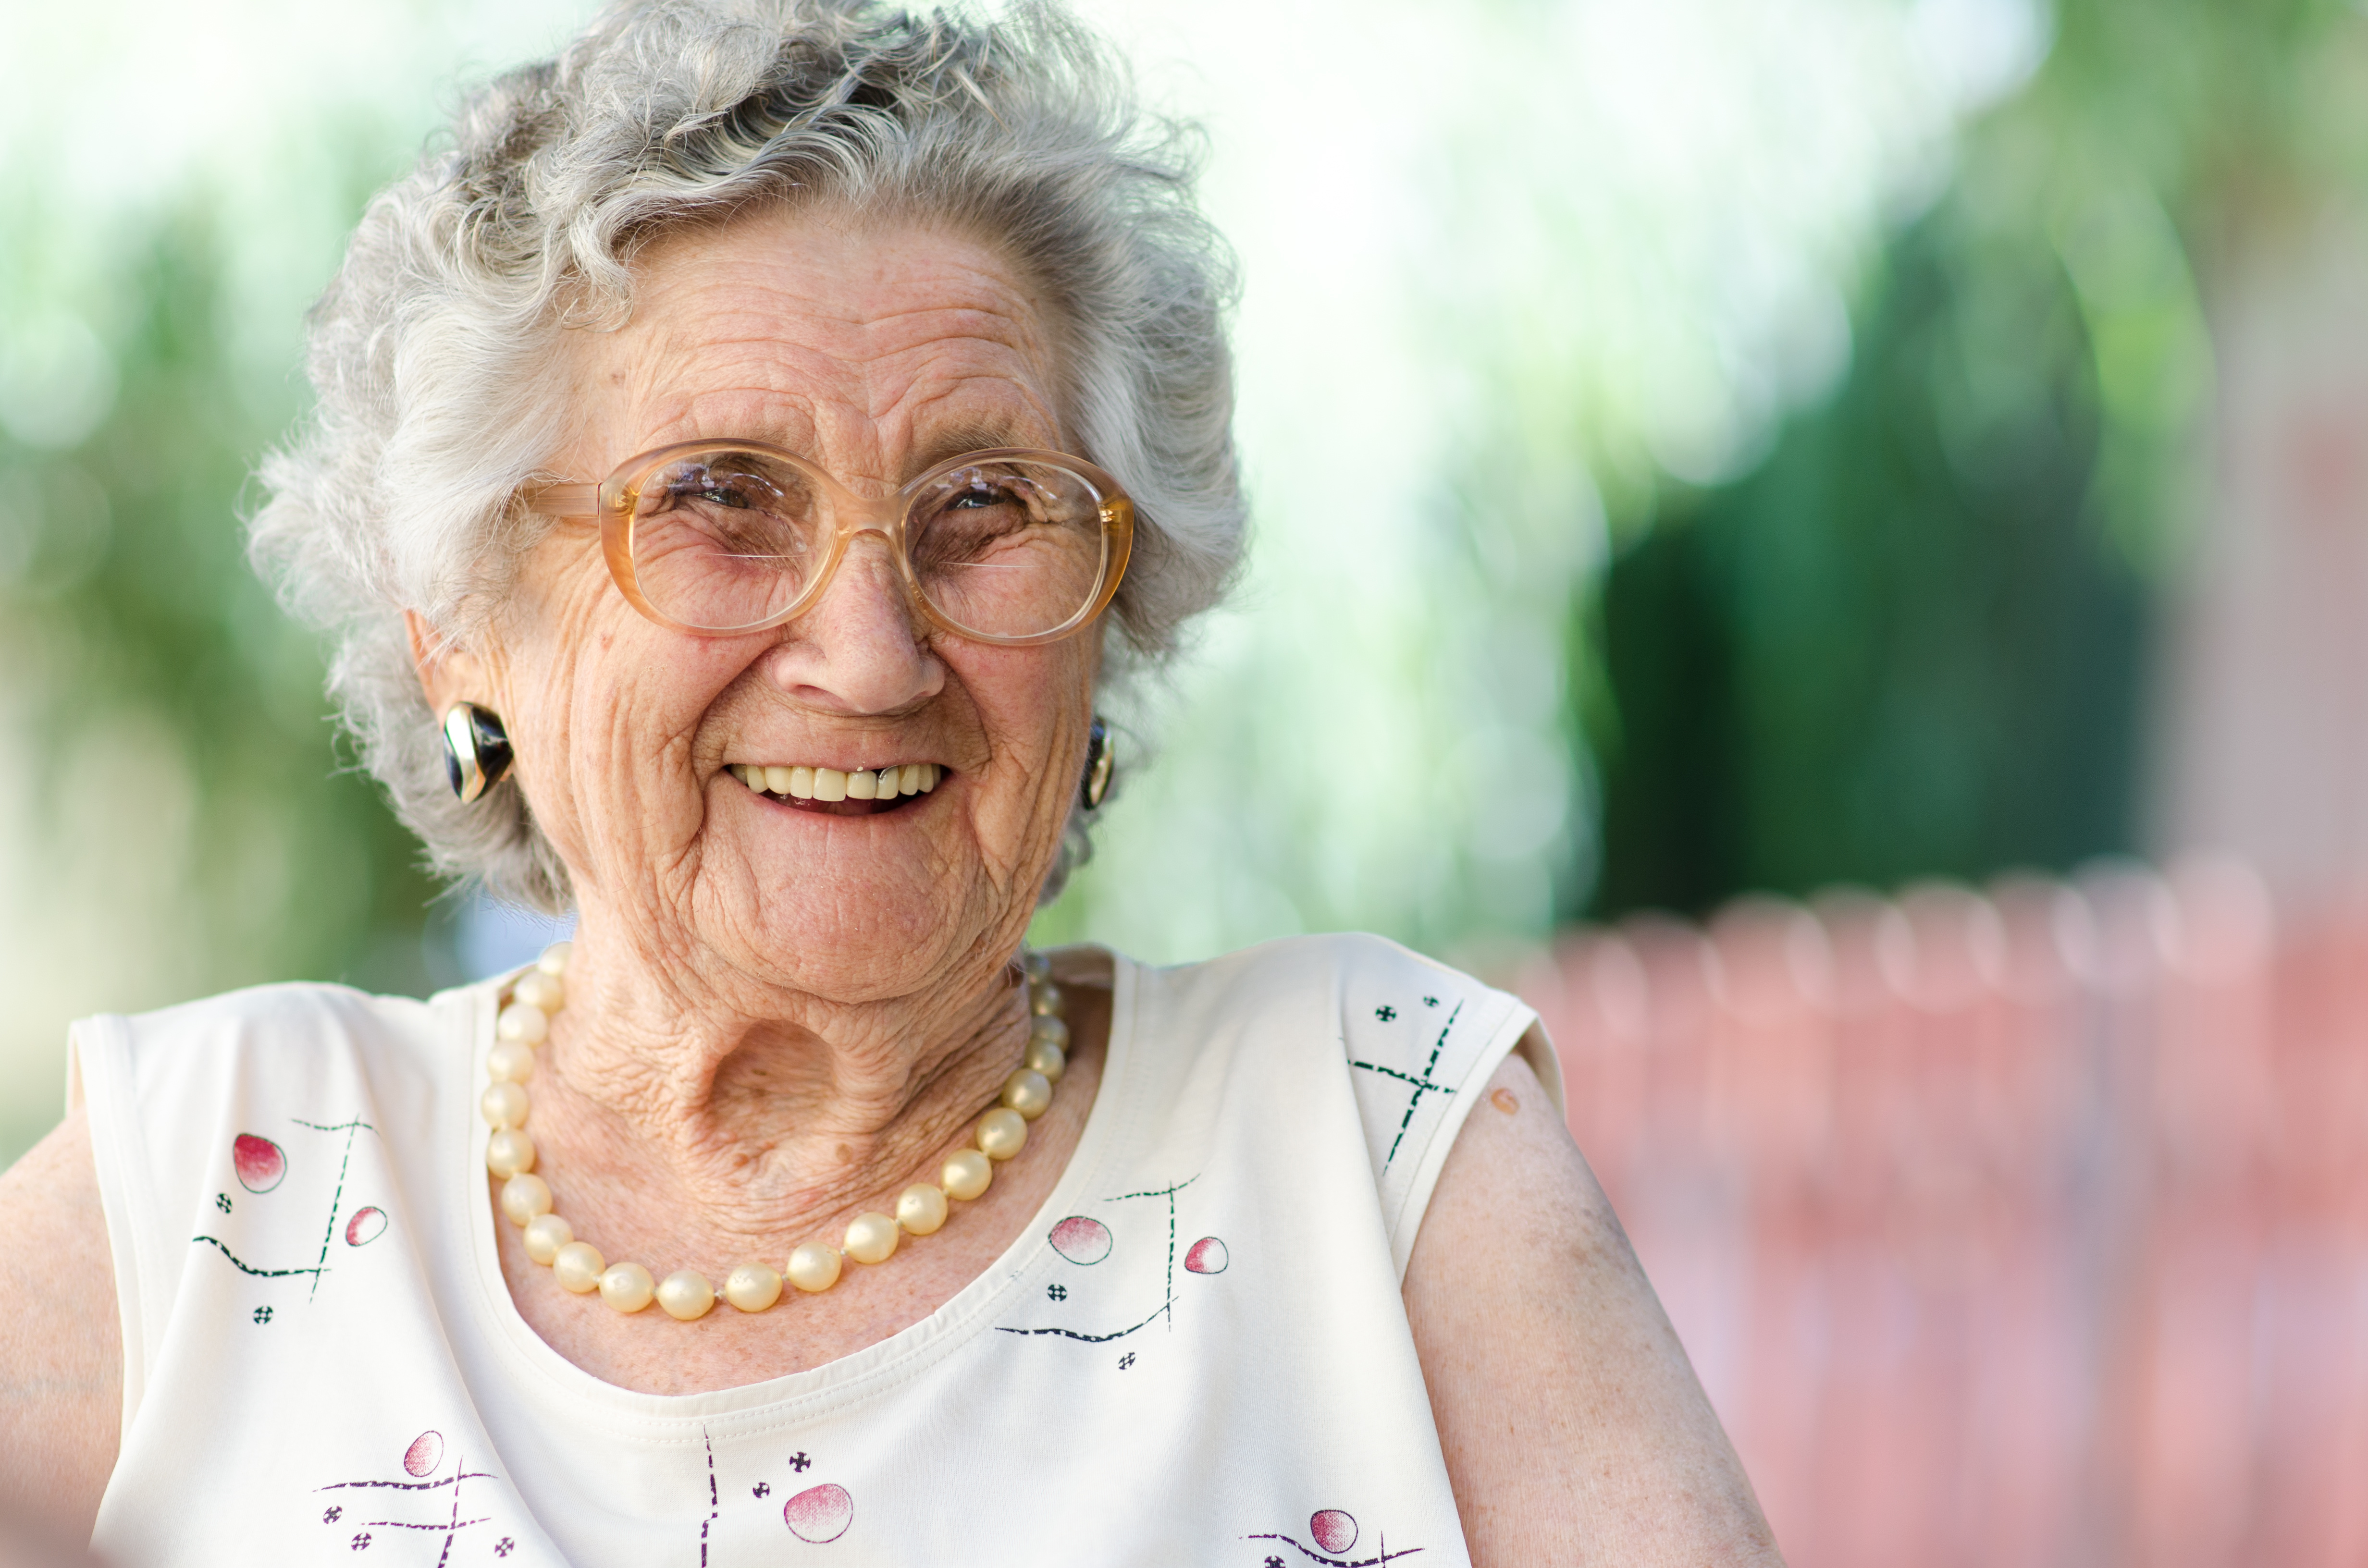 Older white woman wearing glasses and smiling